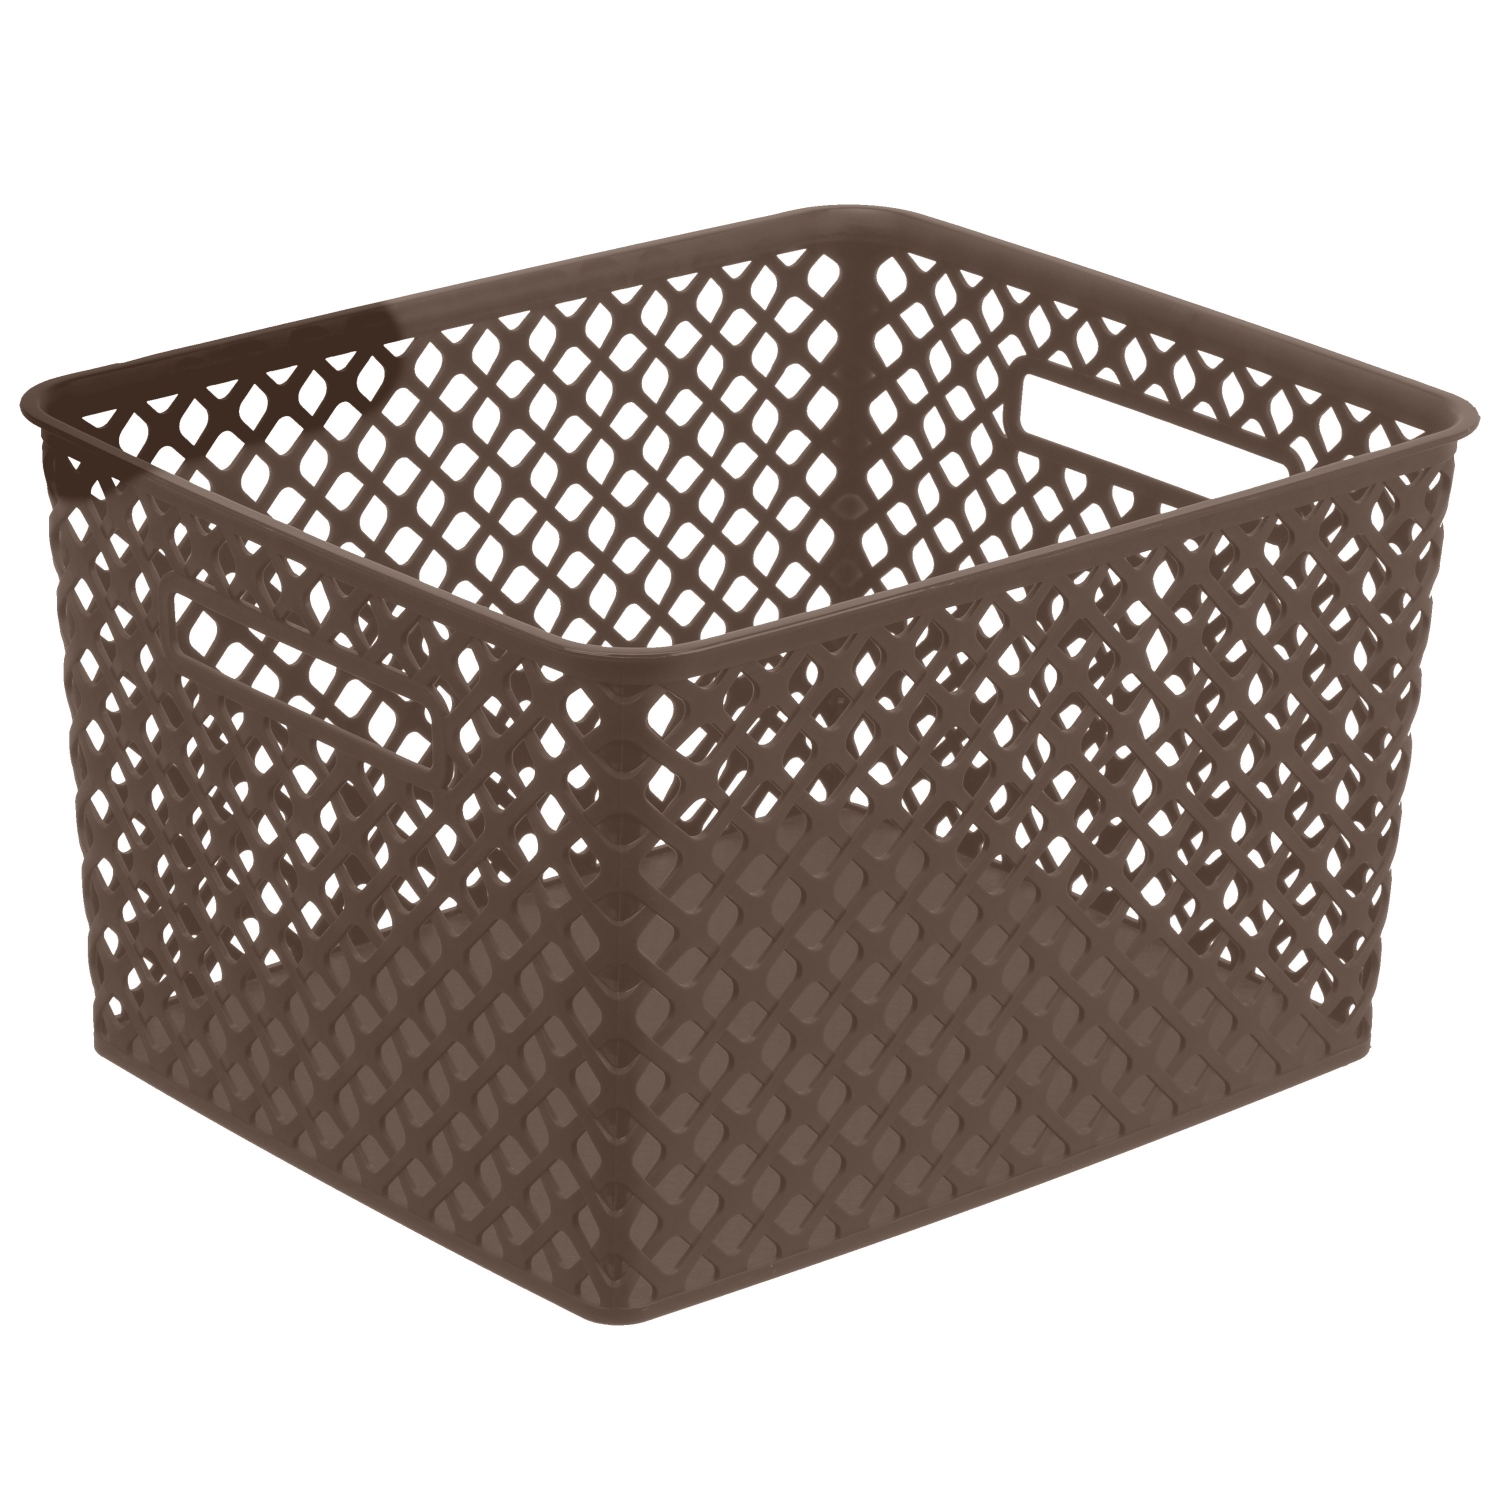 Mainstays Large Deco Basket - Brown